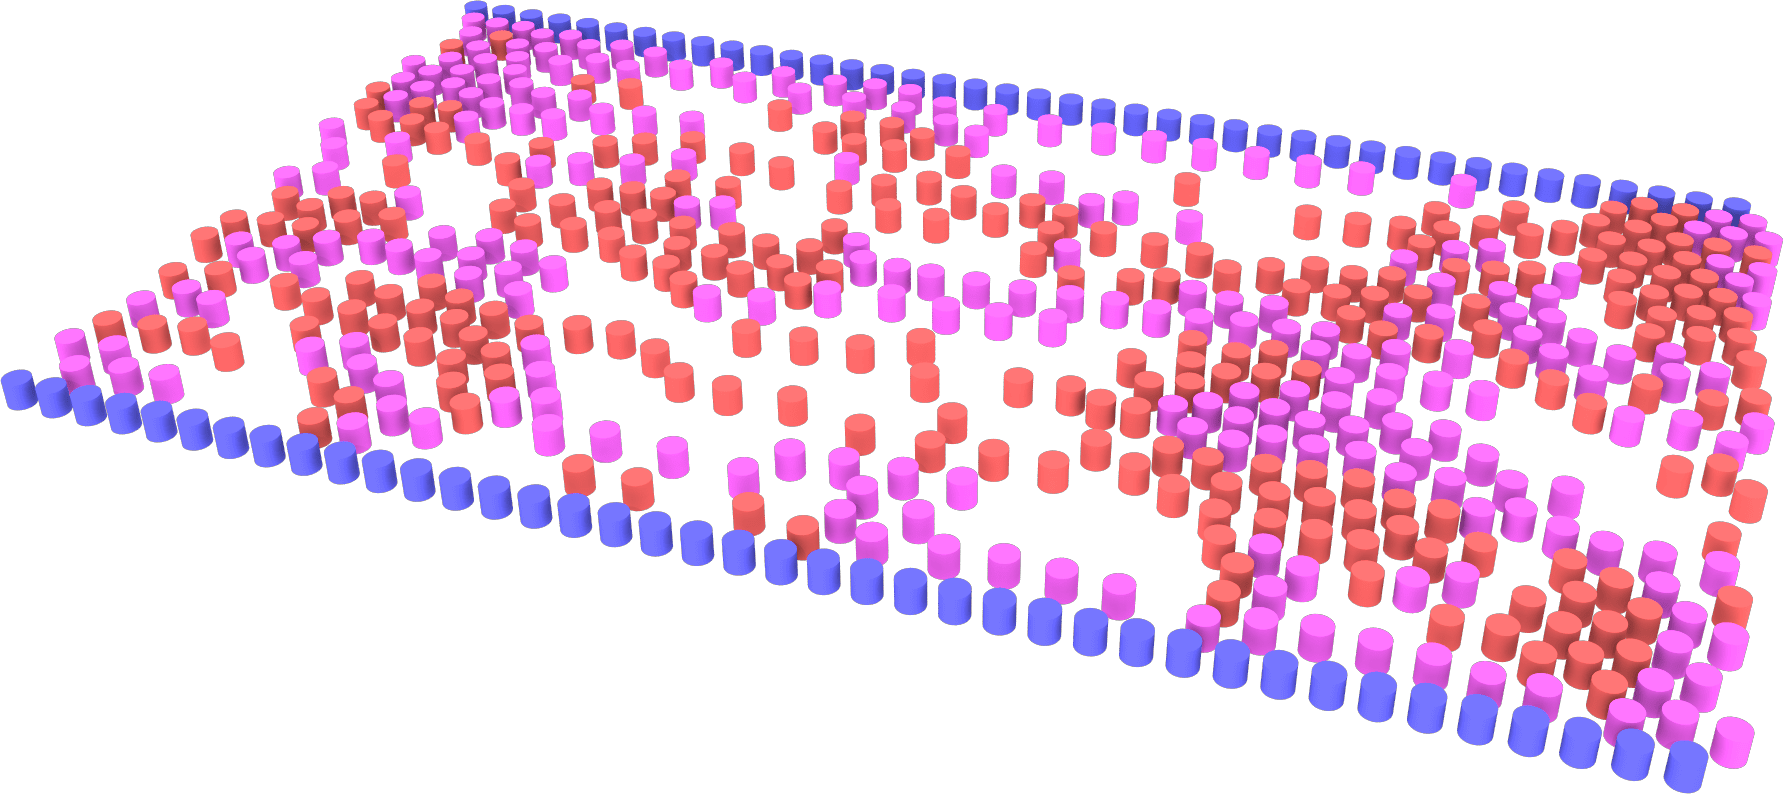 Simulation of pedestrian counterflow (red and pink particles) confined within a hallway (blue boundary), under conditions of weak social distancing. Credit: Kelby Kramer and Gerald J. Wang